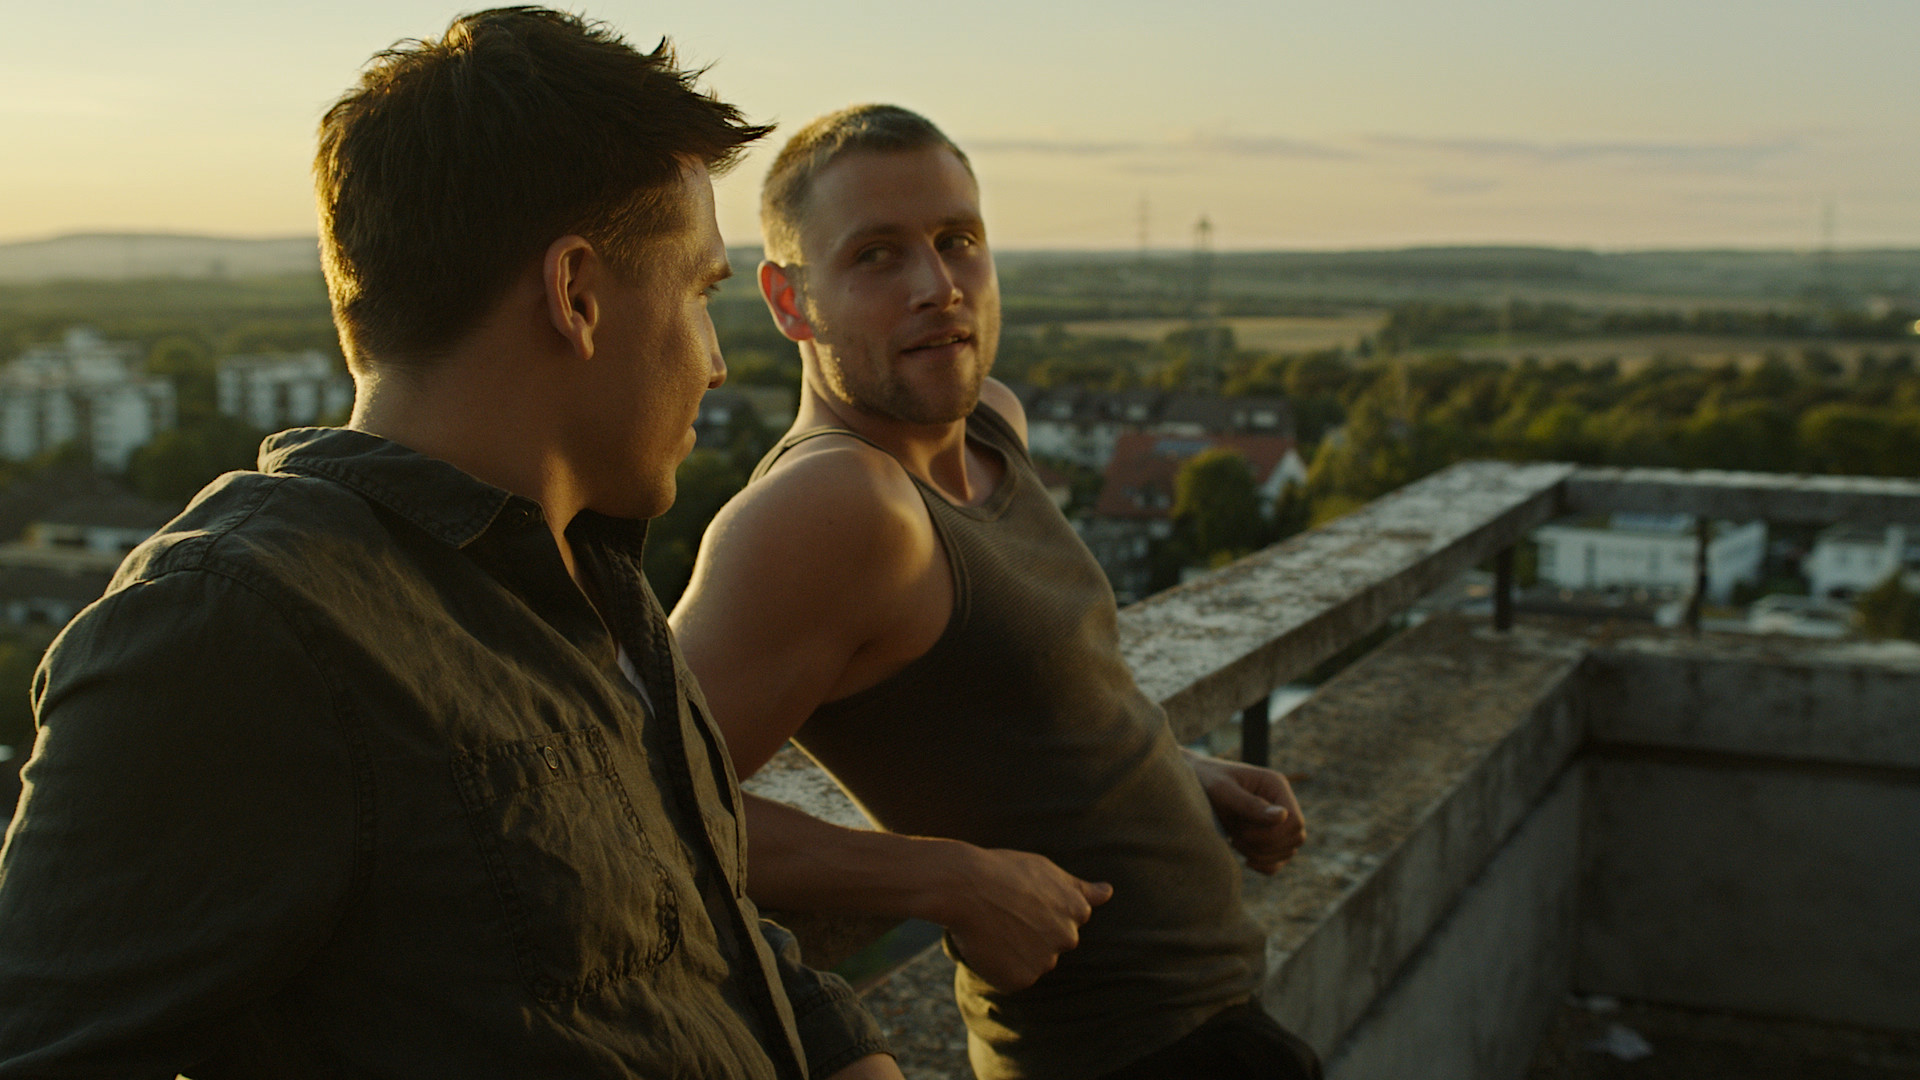 Freier Fall (Free Fall). 2013. Germany. Directed by Stephan Lacant